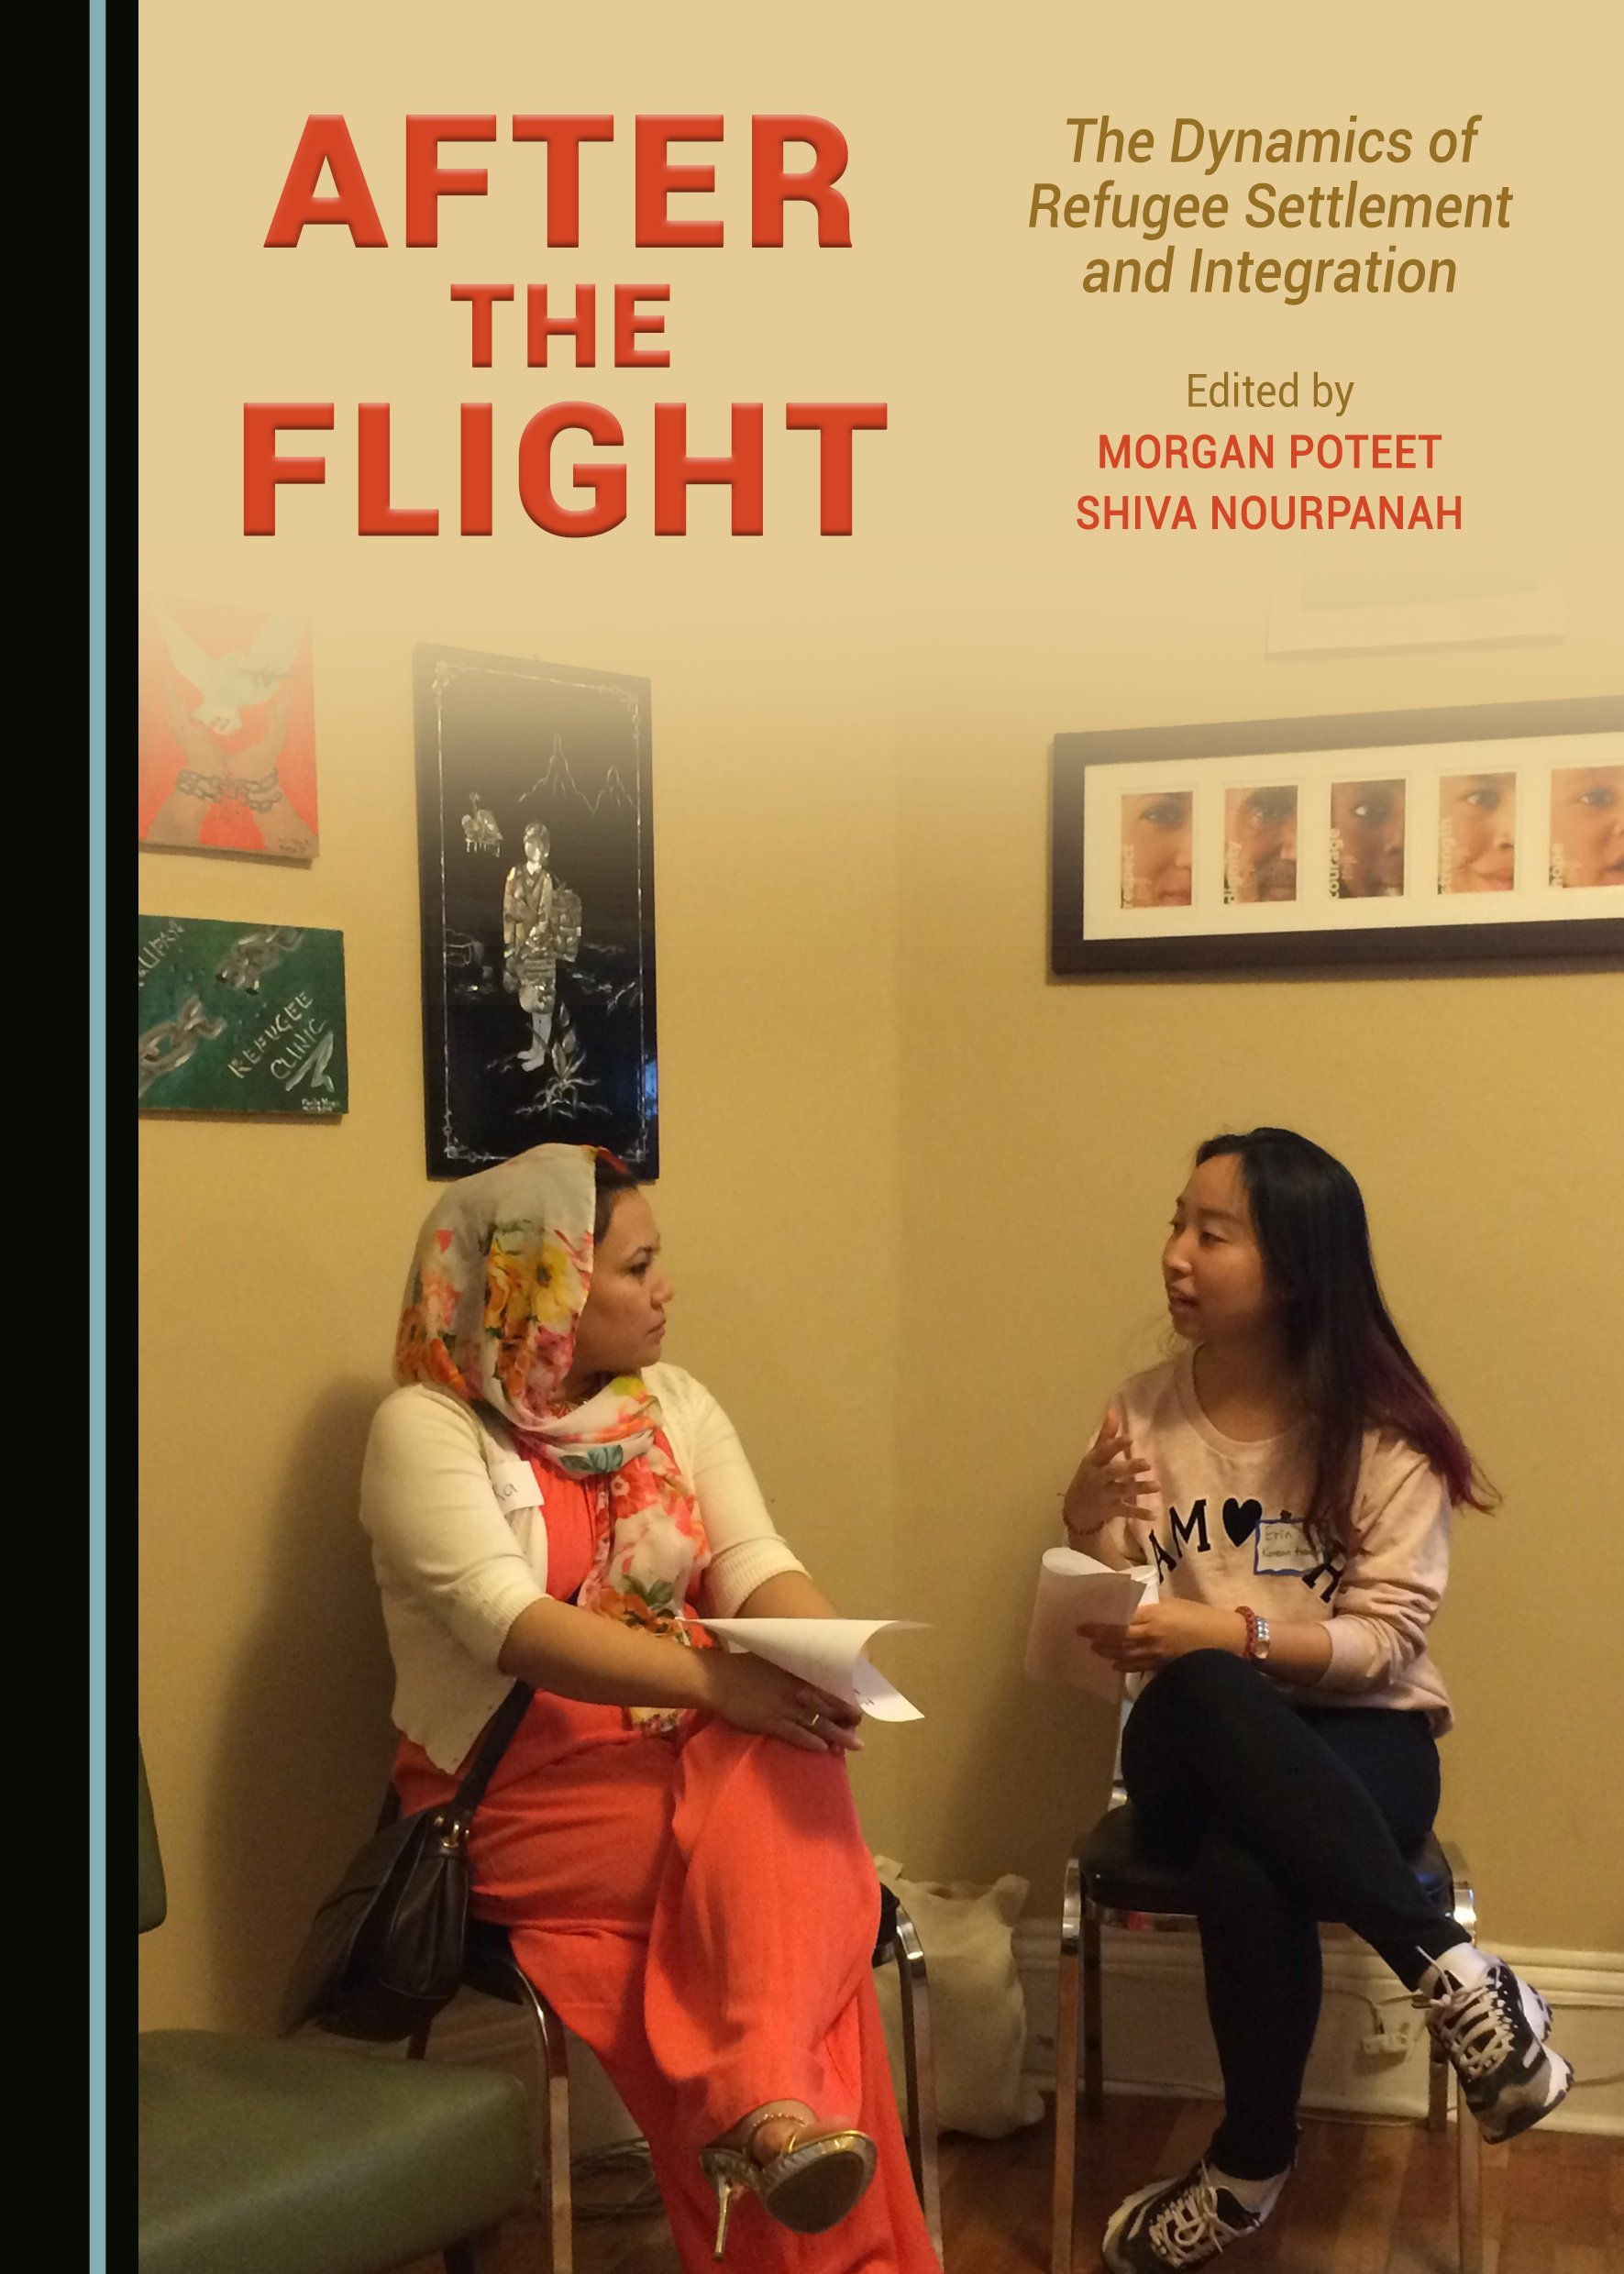 After the Flight: The Dynamics of Refugee Settlement and Integration